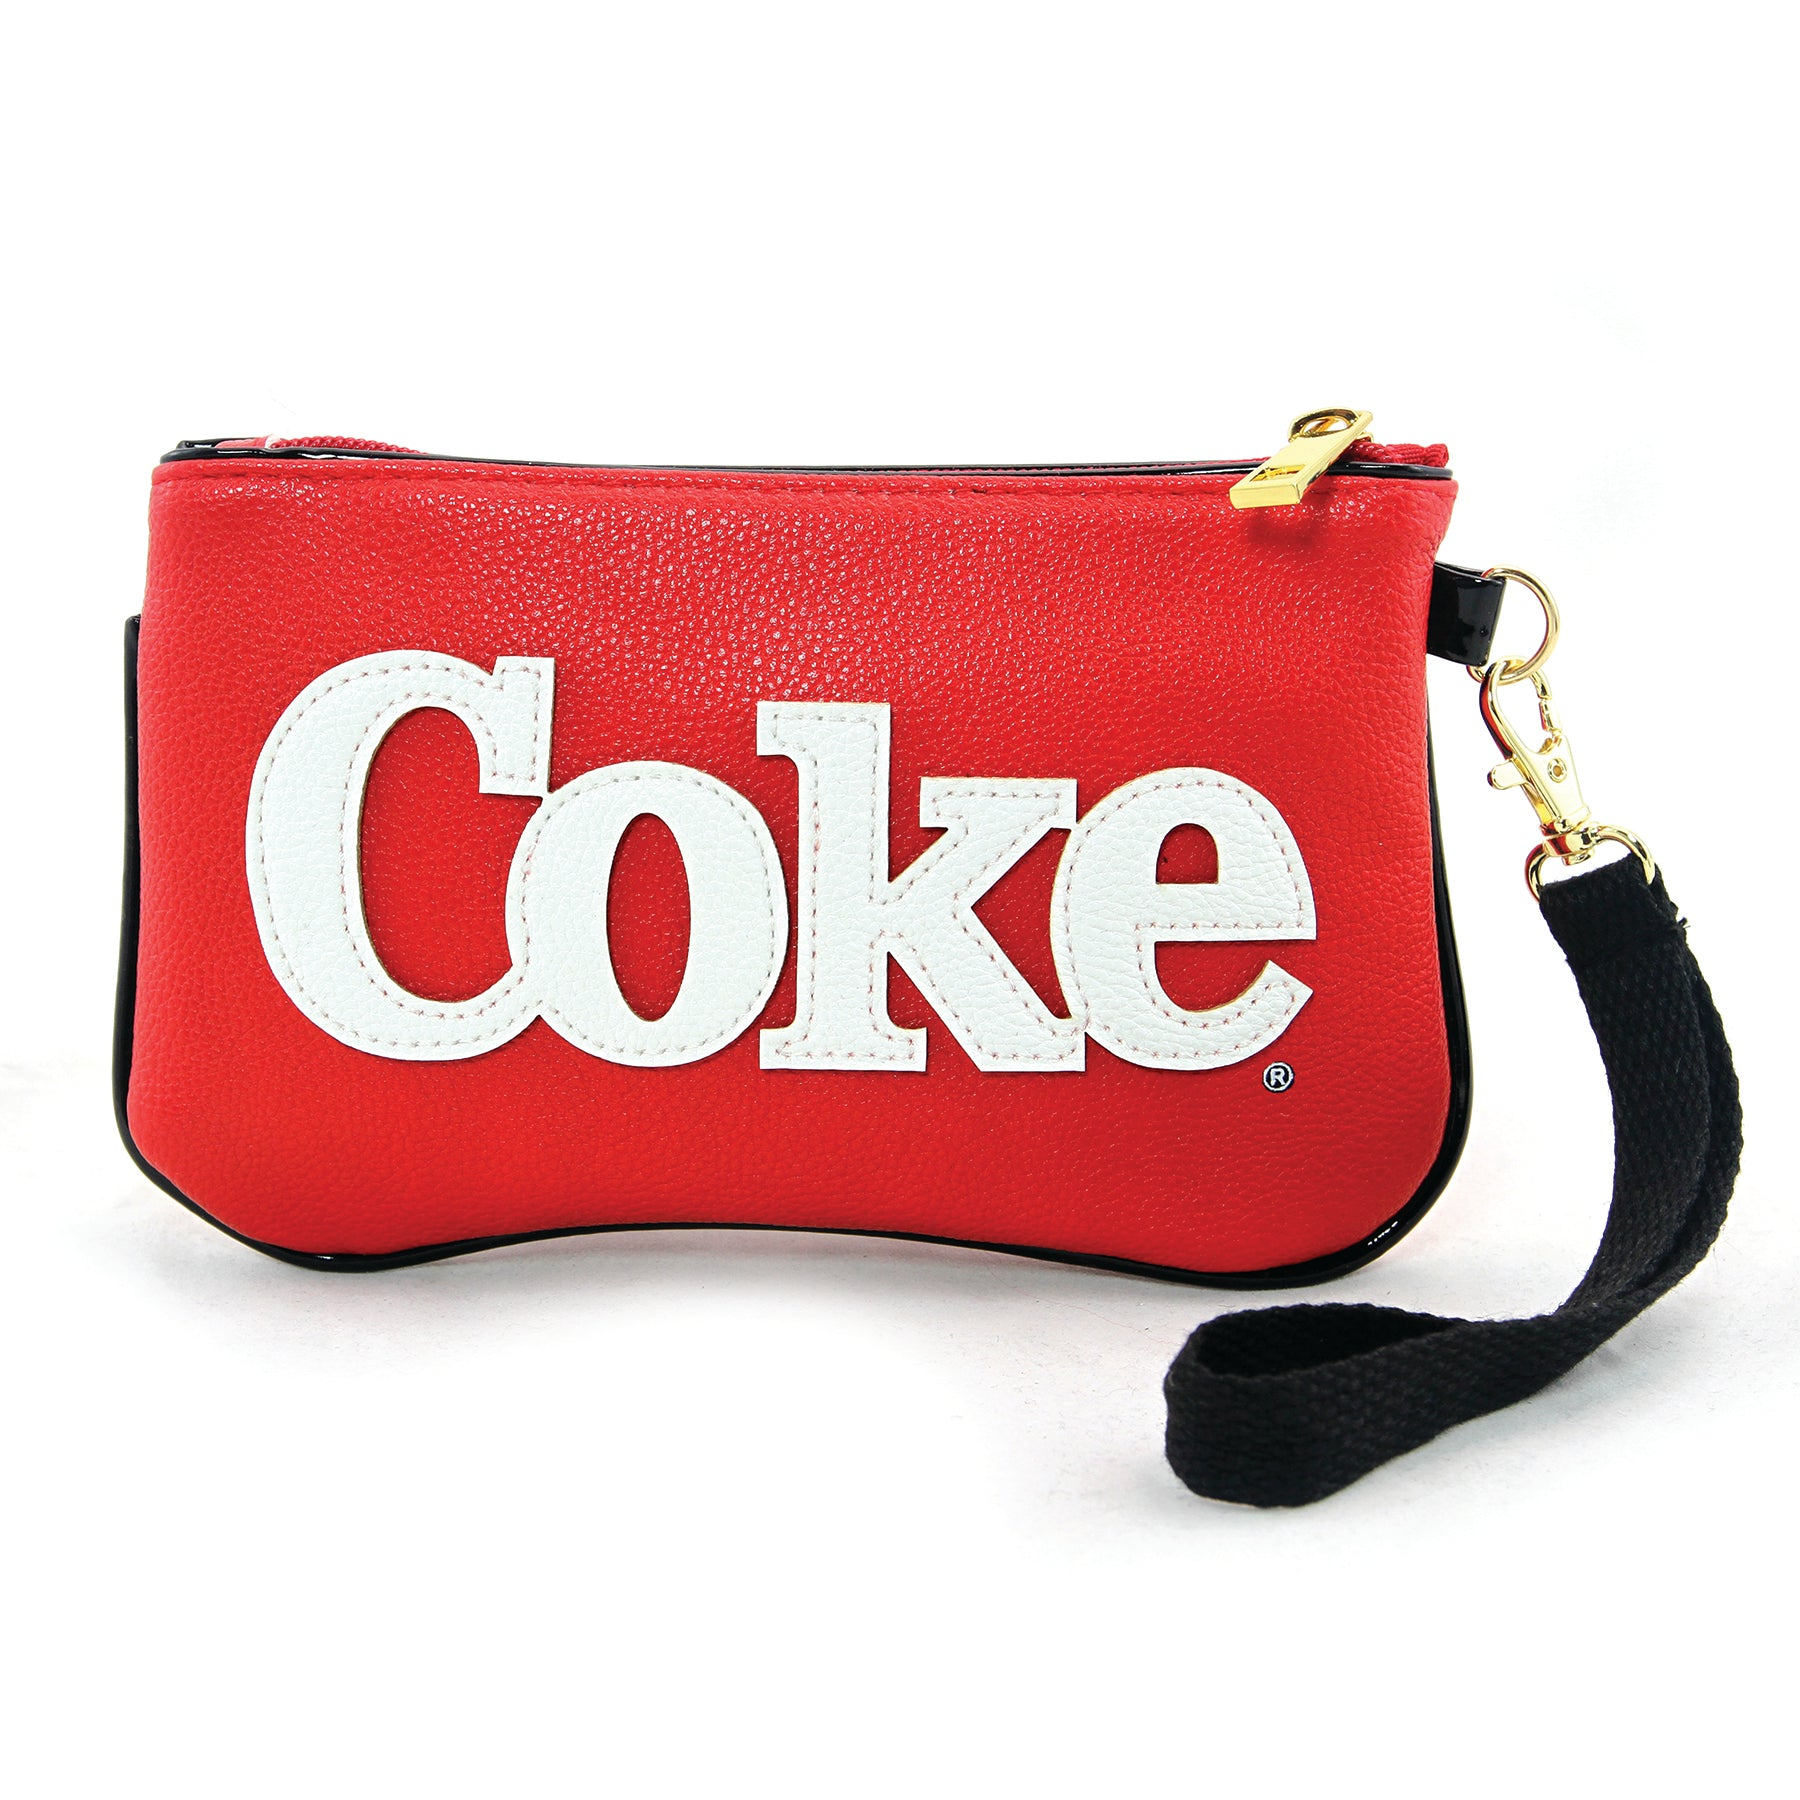 Coca-cola wristlet frontal view